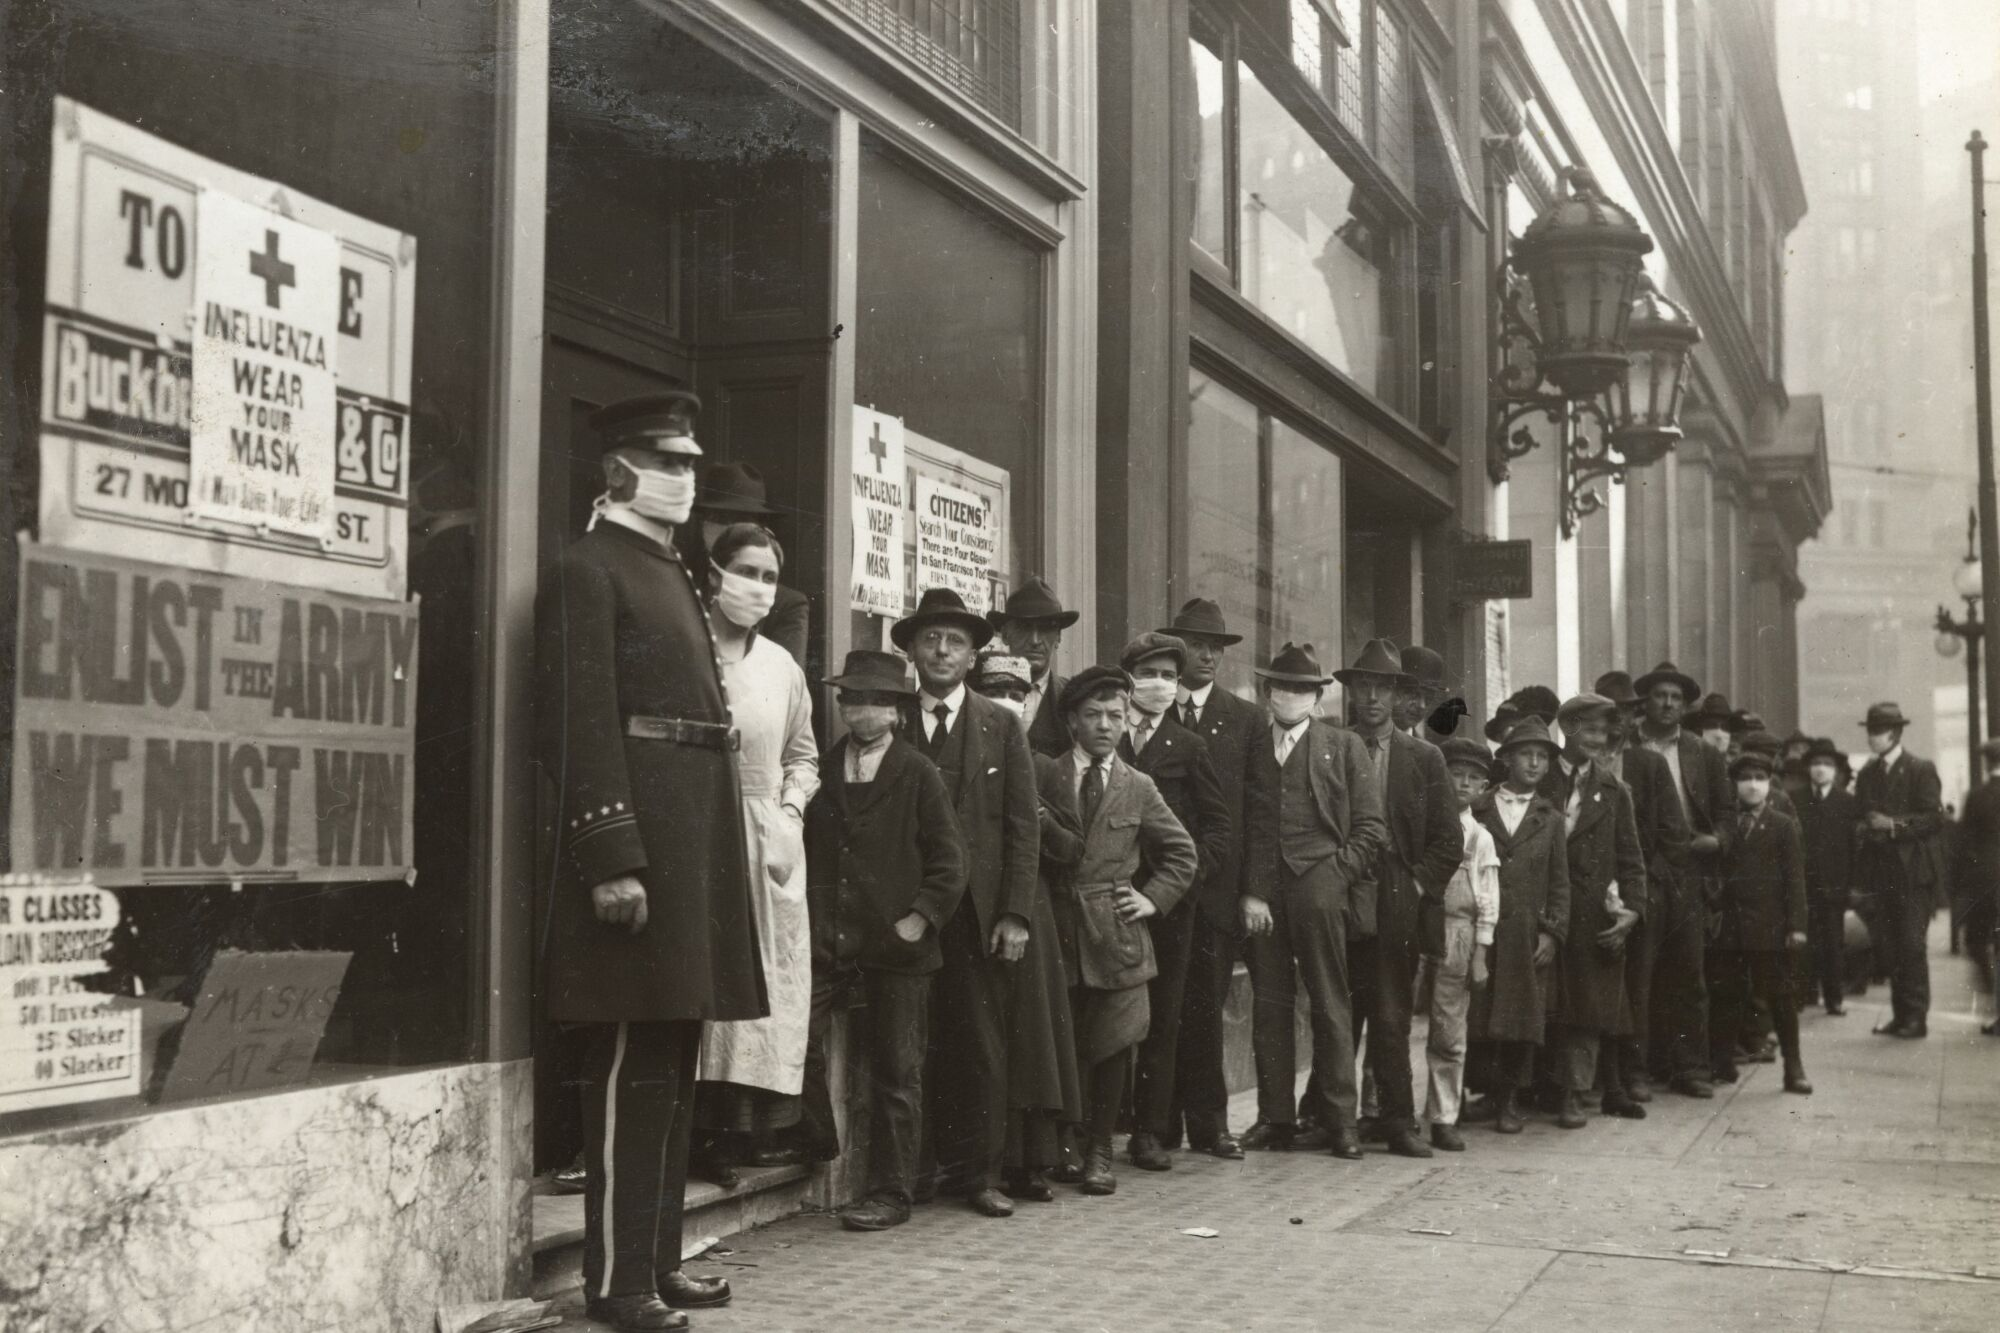 People wait in line to get flu masks on Montgomery Street in San Francisco in 1918.